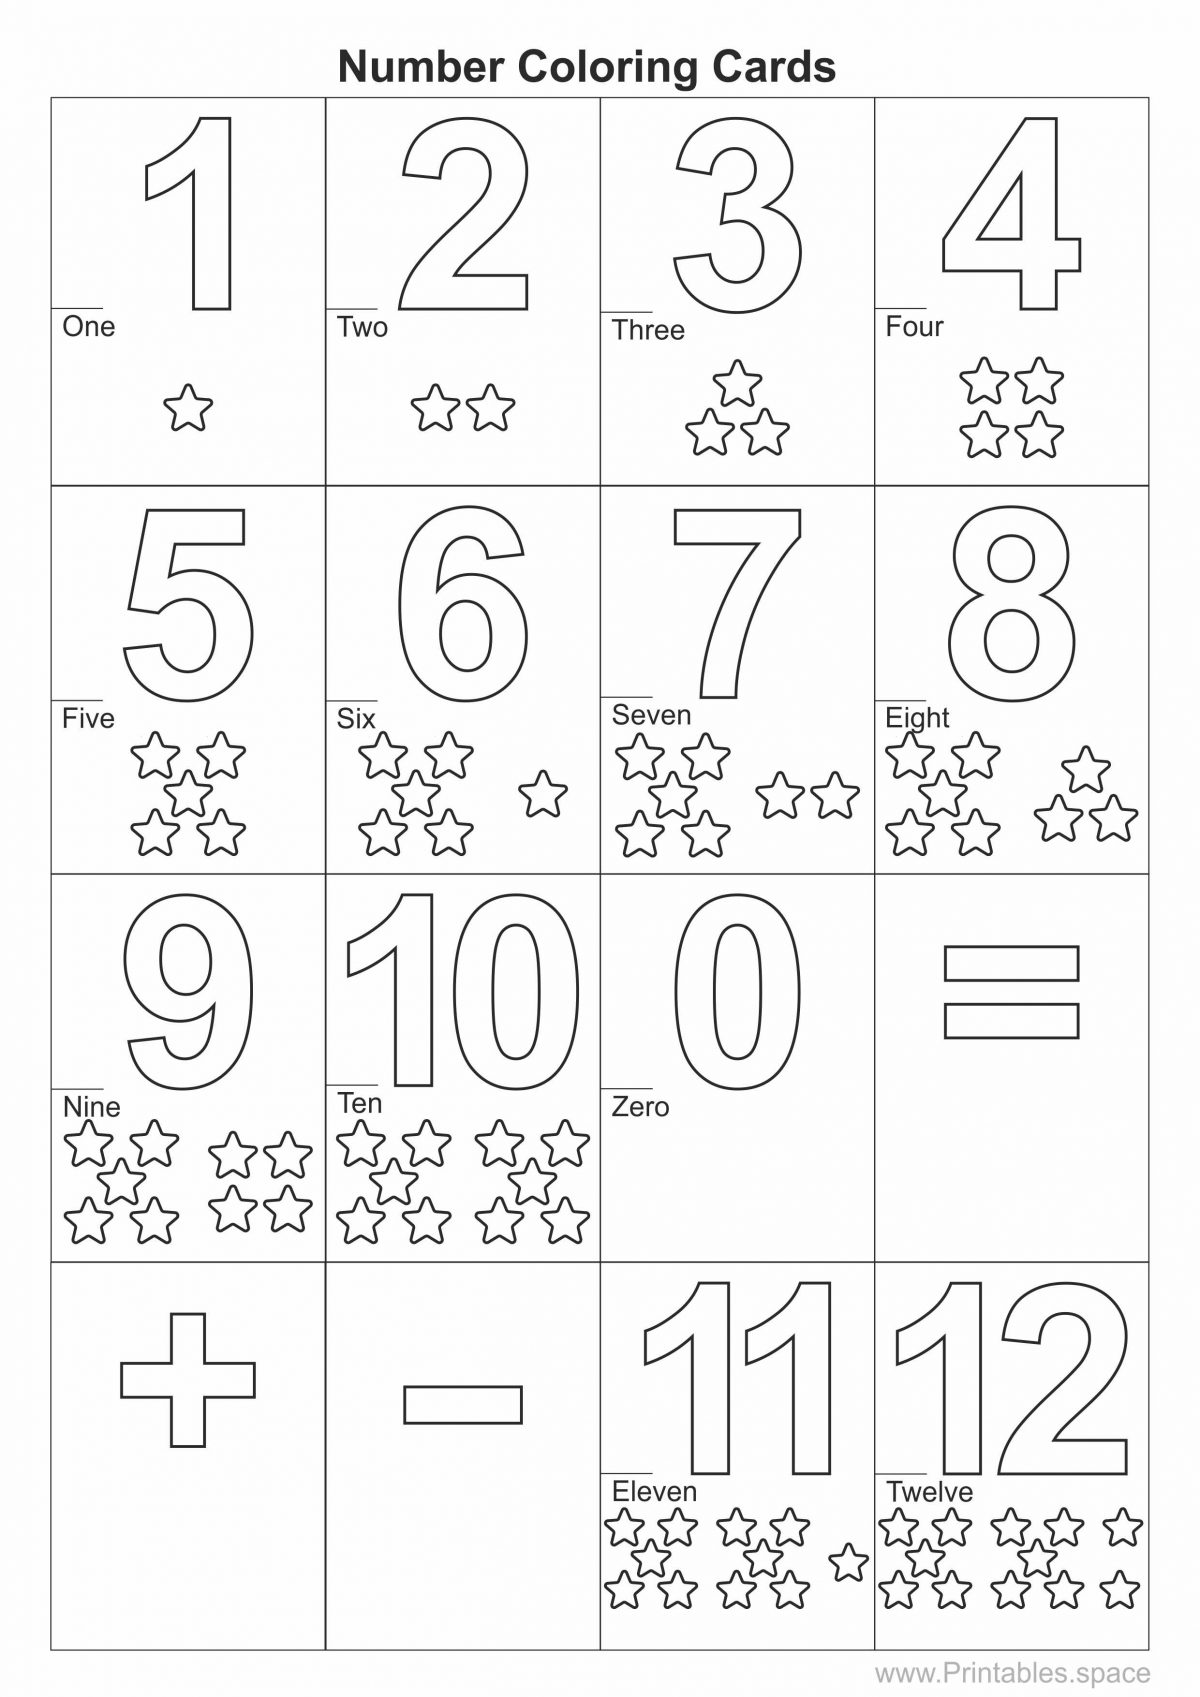 Number coloring cards